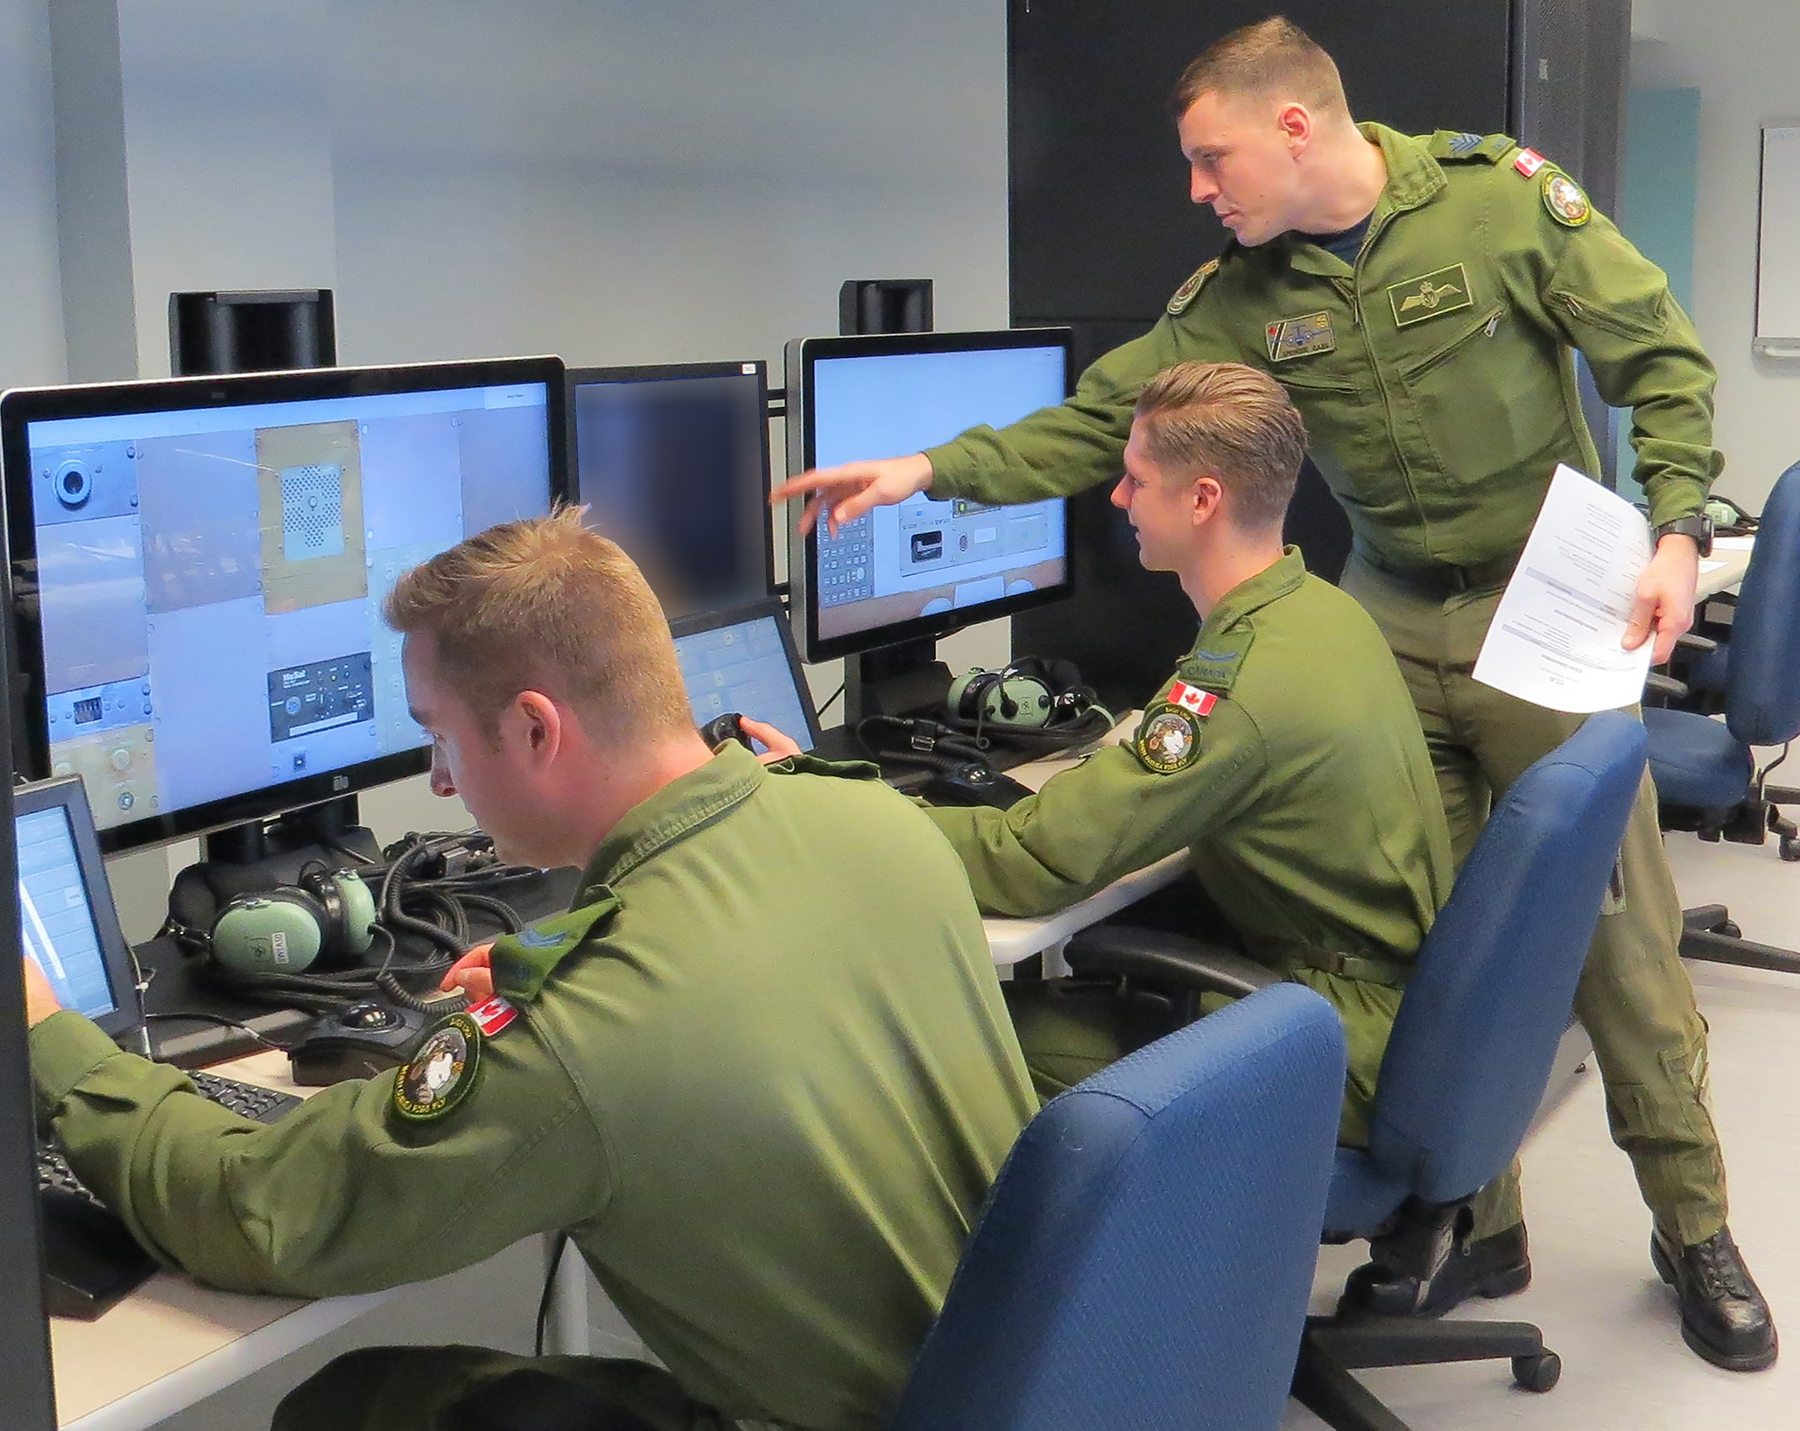 Two men in olive green uniforms sit at computer stations while a third man, wearing a similar uniform and holding some paper, points toward one of the screens.